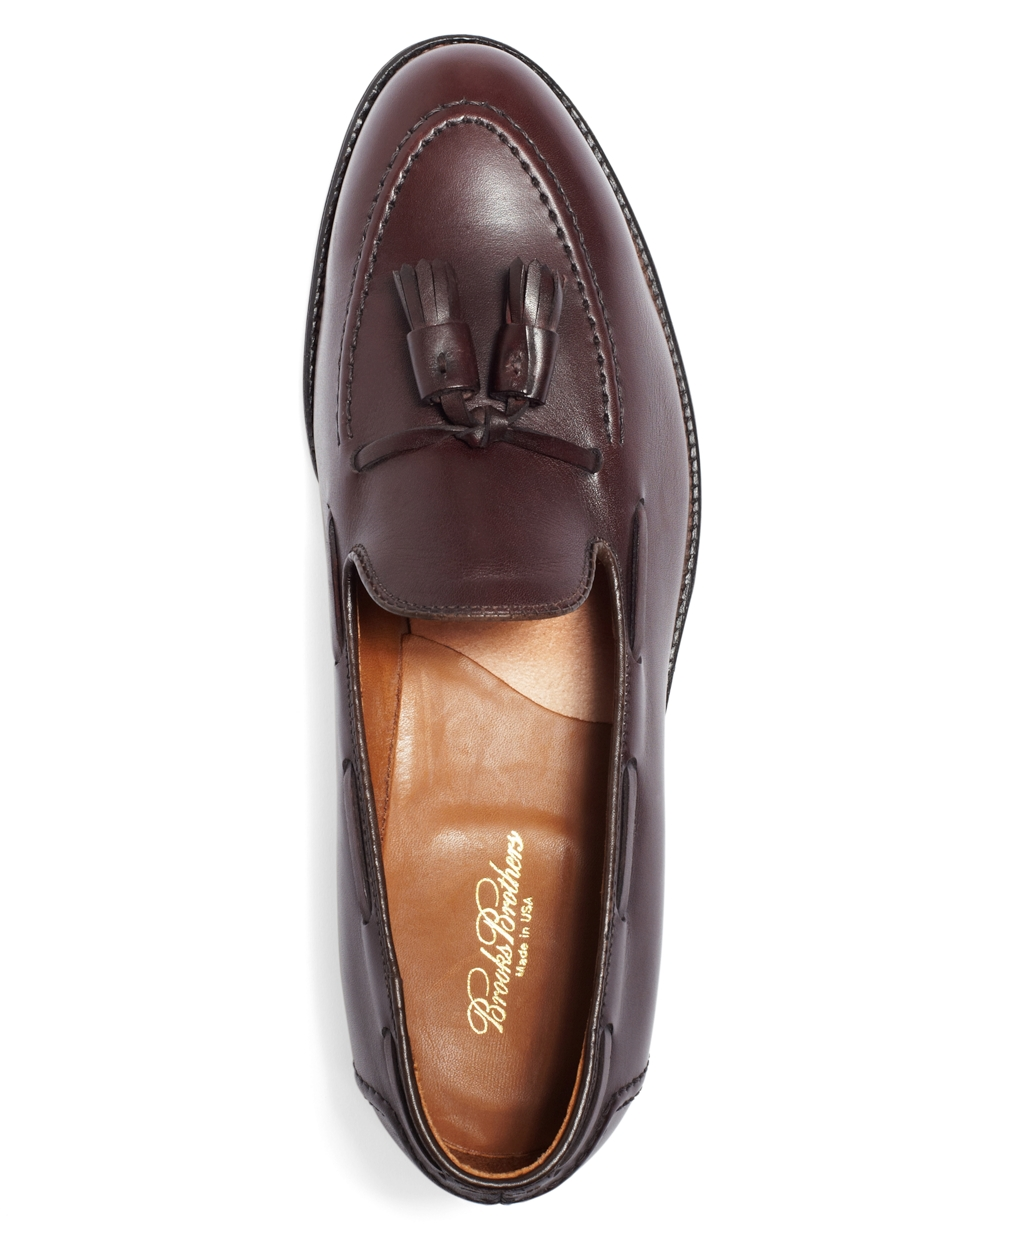 e247cd7e1d0 Lyst - Brooks Brothers Tassel Loafers in Purple for Men